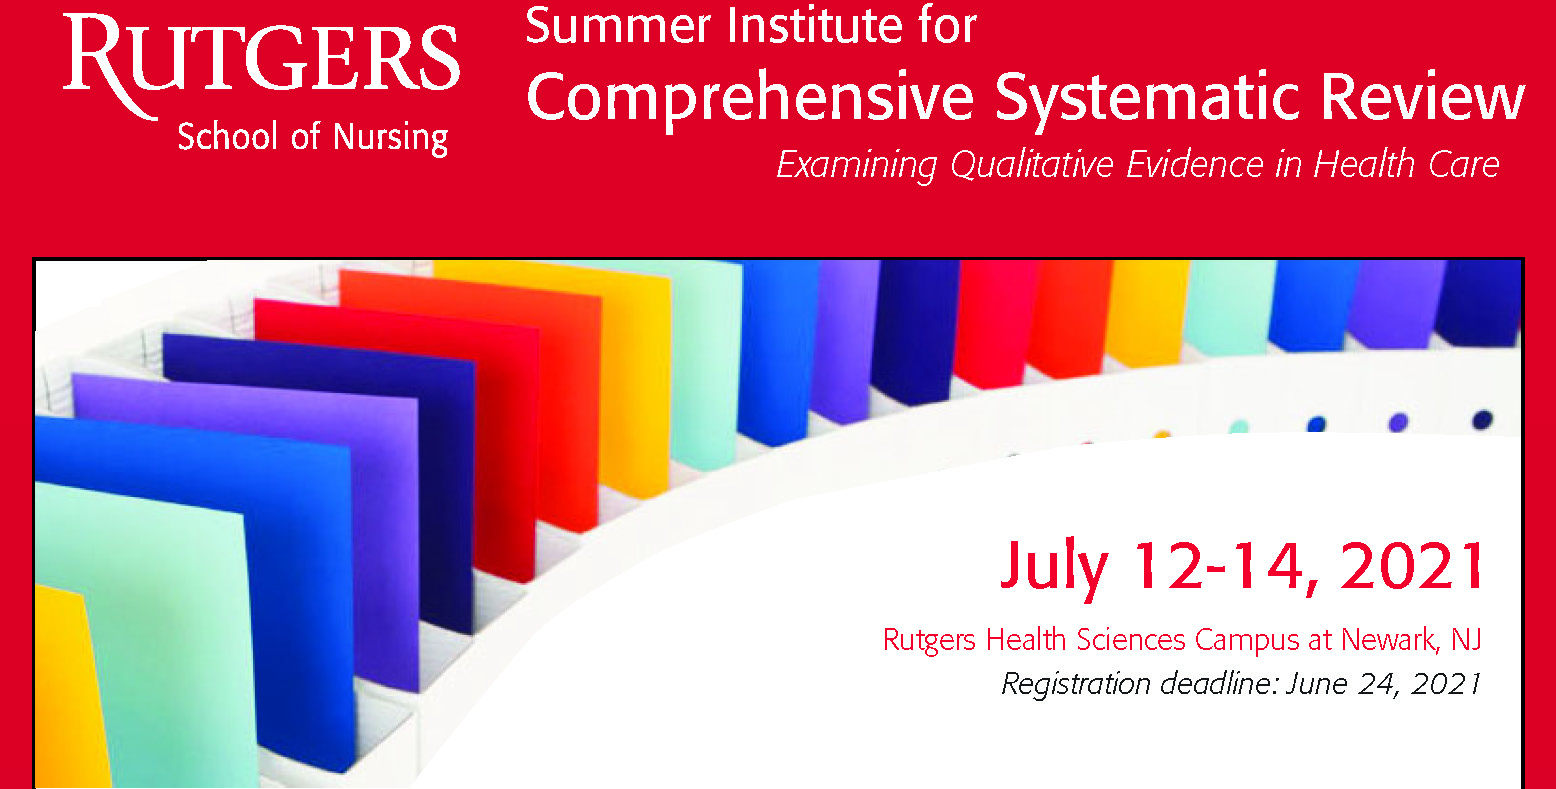 NEST Summer Institute for Comprehensive Systematic Review 2021 - 3 Day Qualitative Track Banner